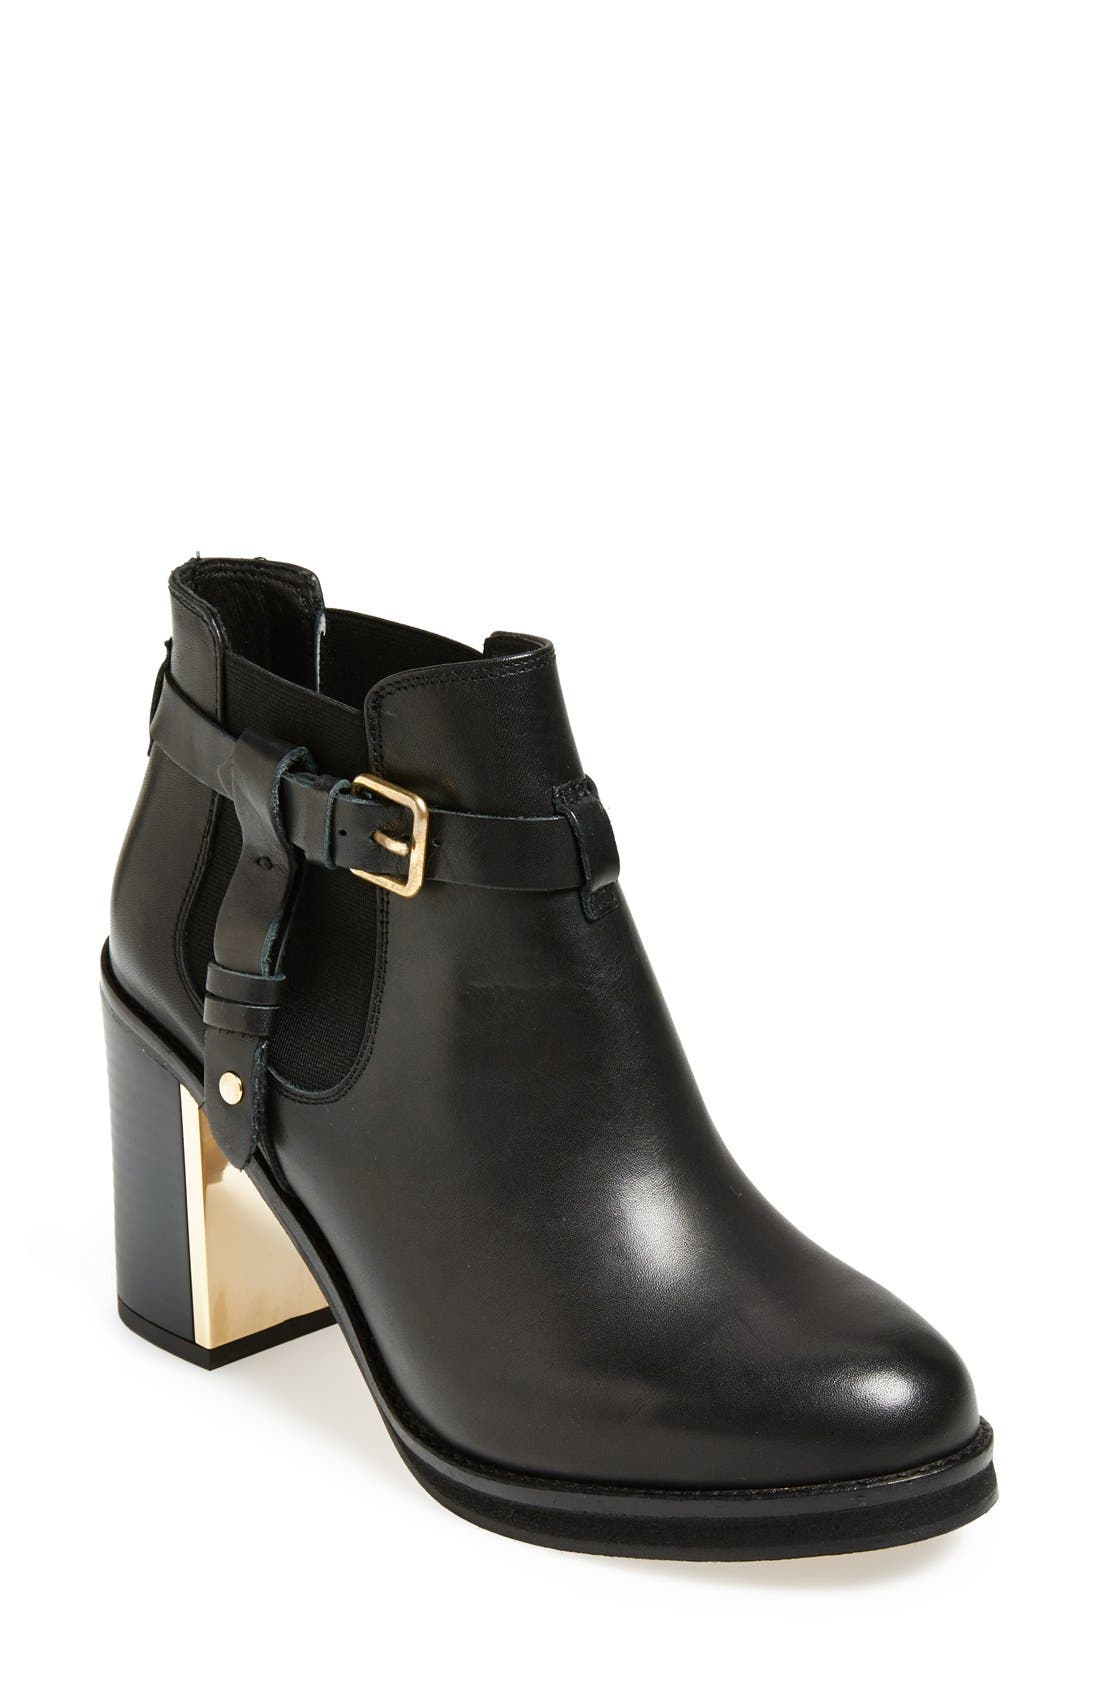 'Mine' Ankle Boot,                             Main thumbnail 1, color,                             001